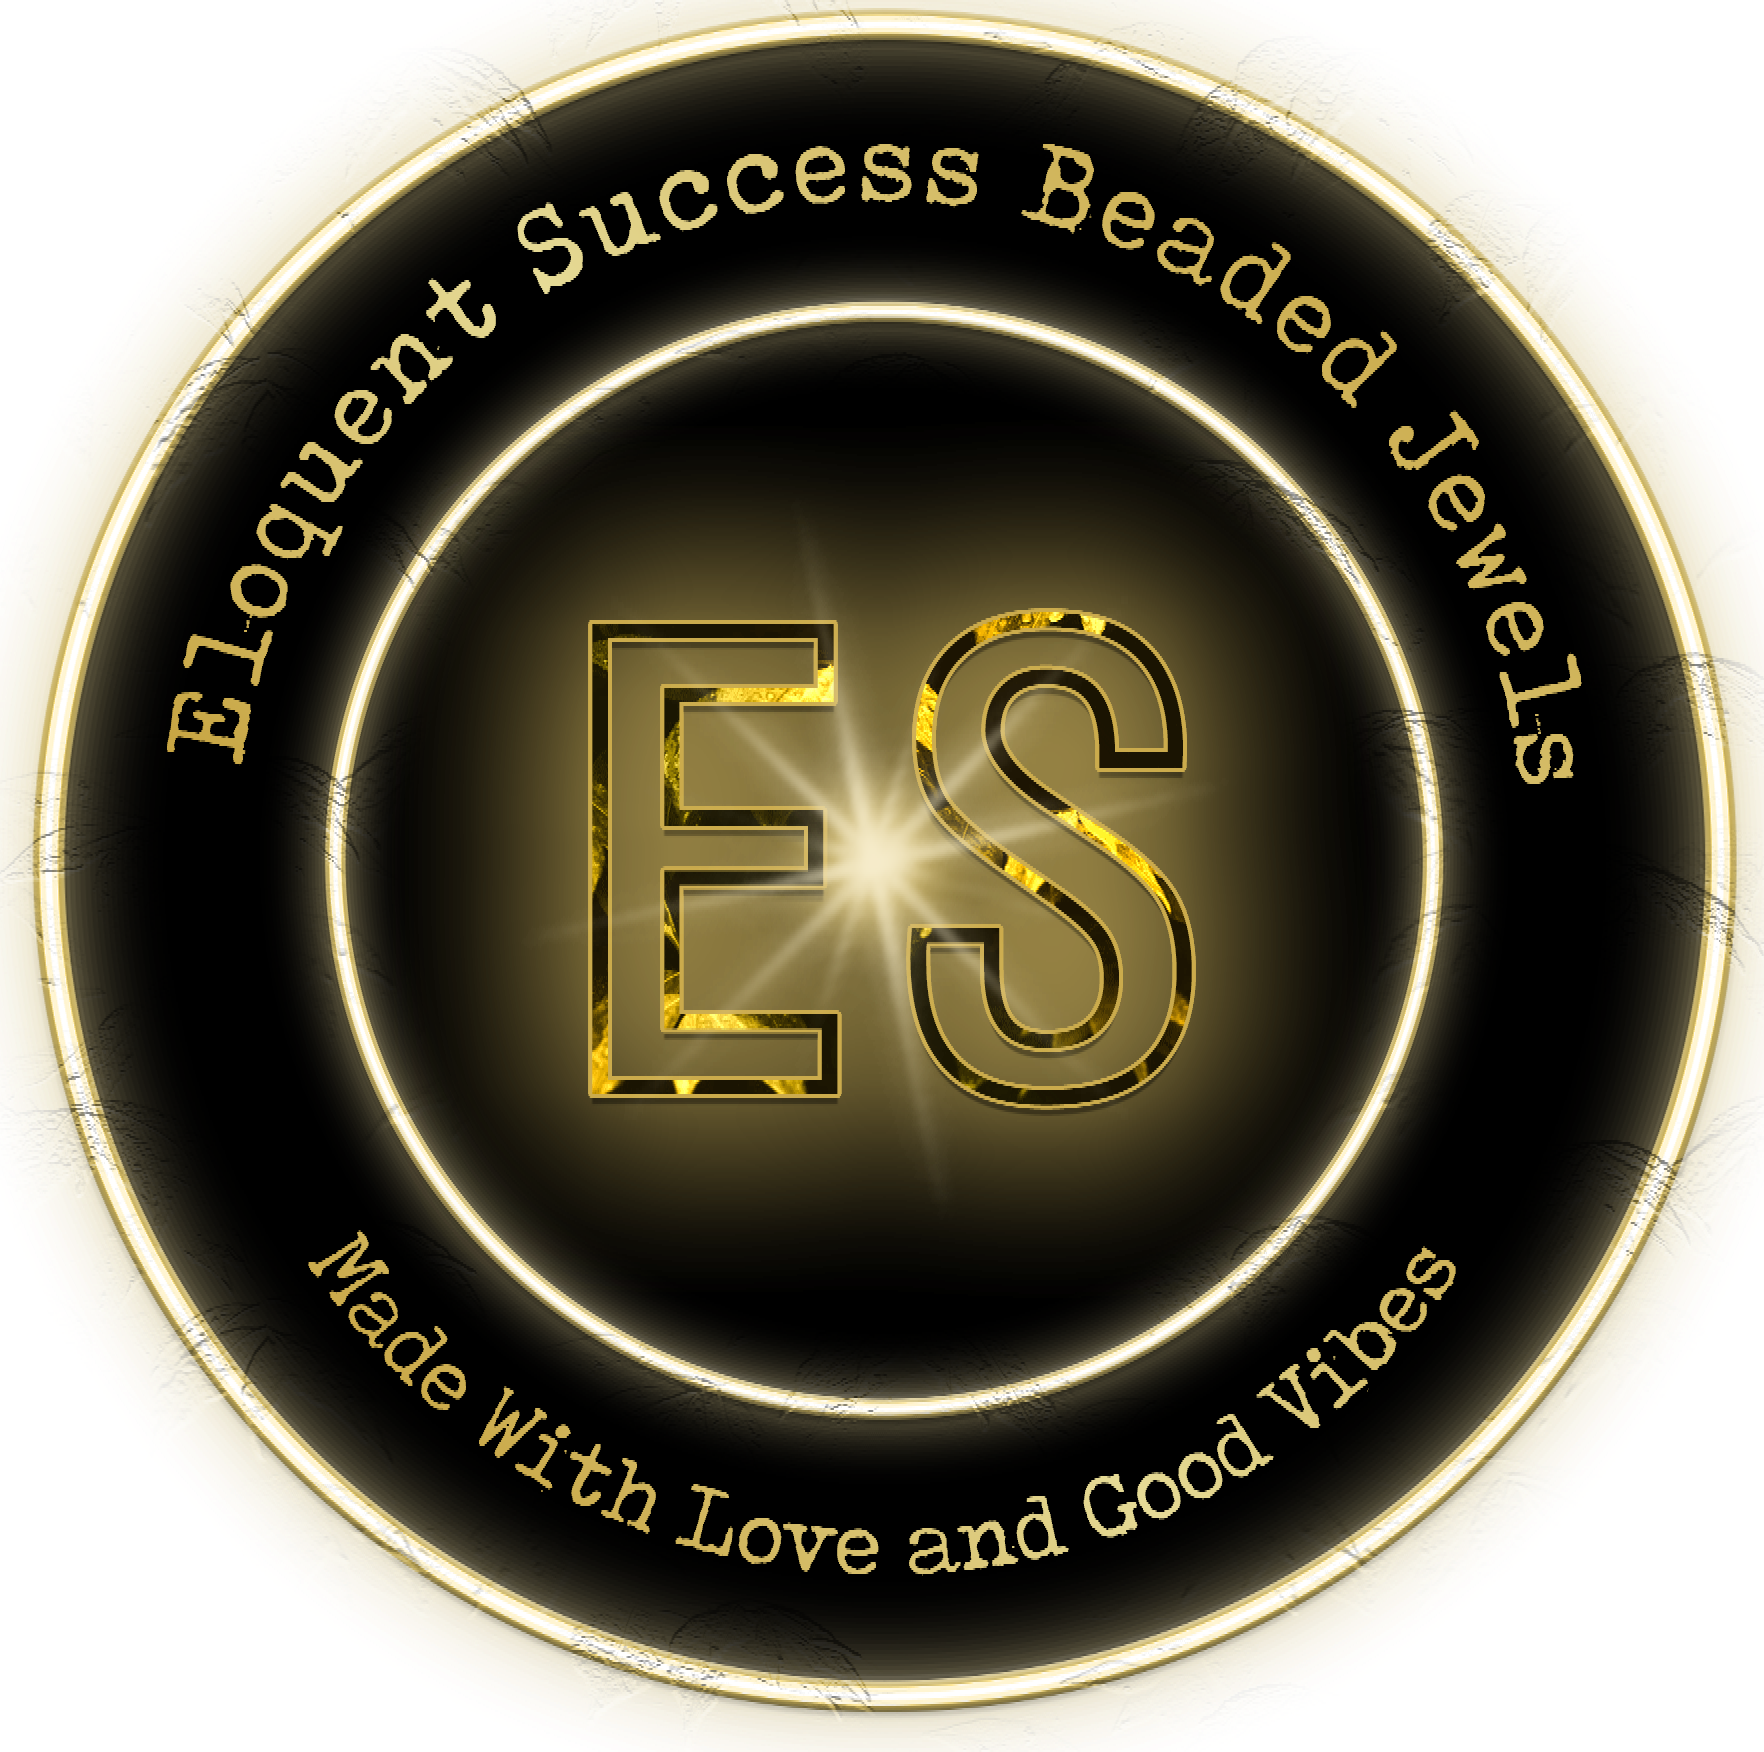 Eloquent Success Beaded Jewels